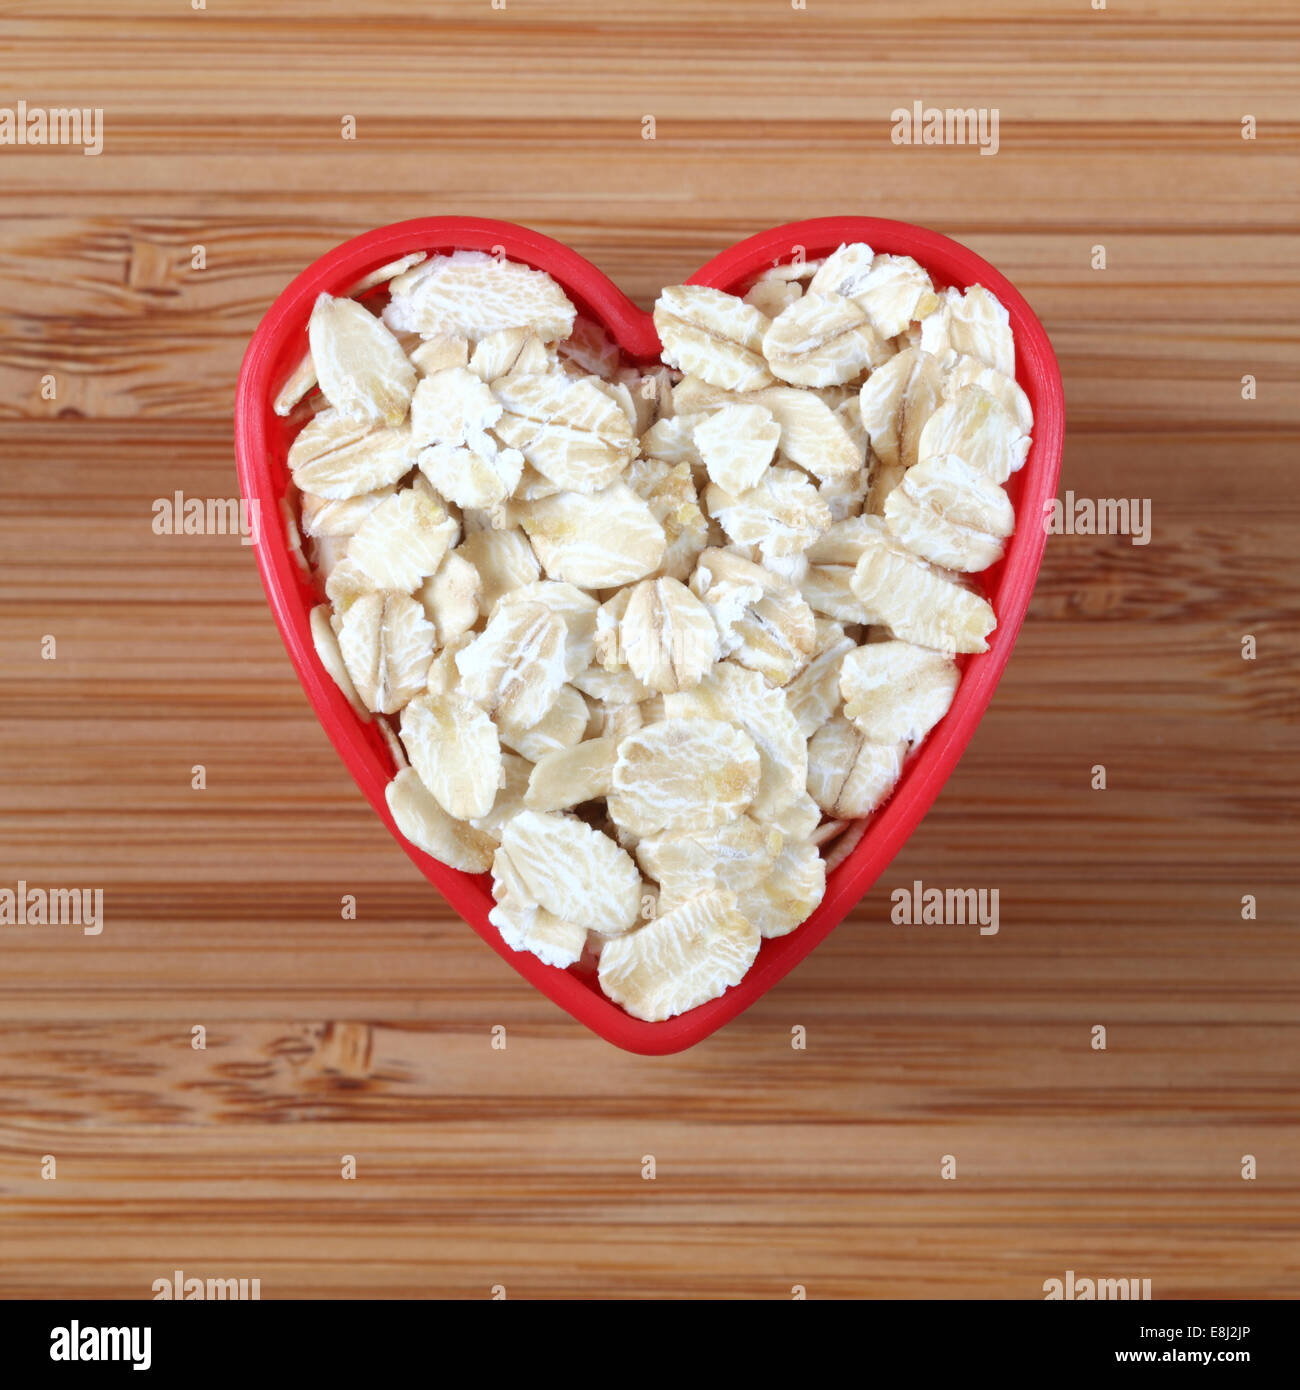 Oatmeal in a heart bowl. Close-up. - Stock Image